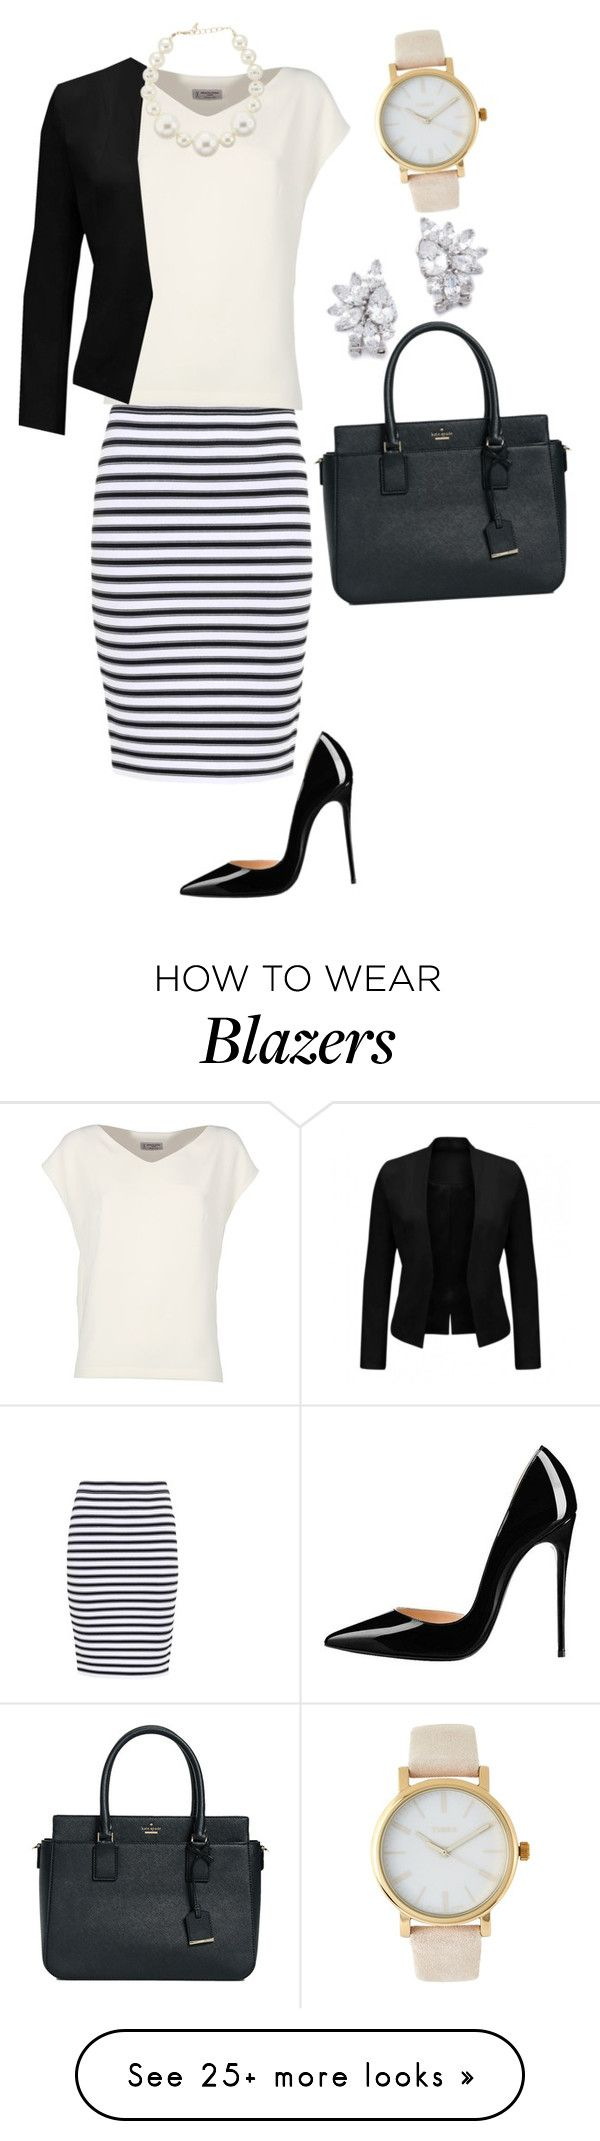 """""""220612 BSM"""" by mil0000000000000 on Polyvore featuring A.L.C., Alberto Biani, Kenneth Jay Lane, Timex and Kate Spade"""